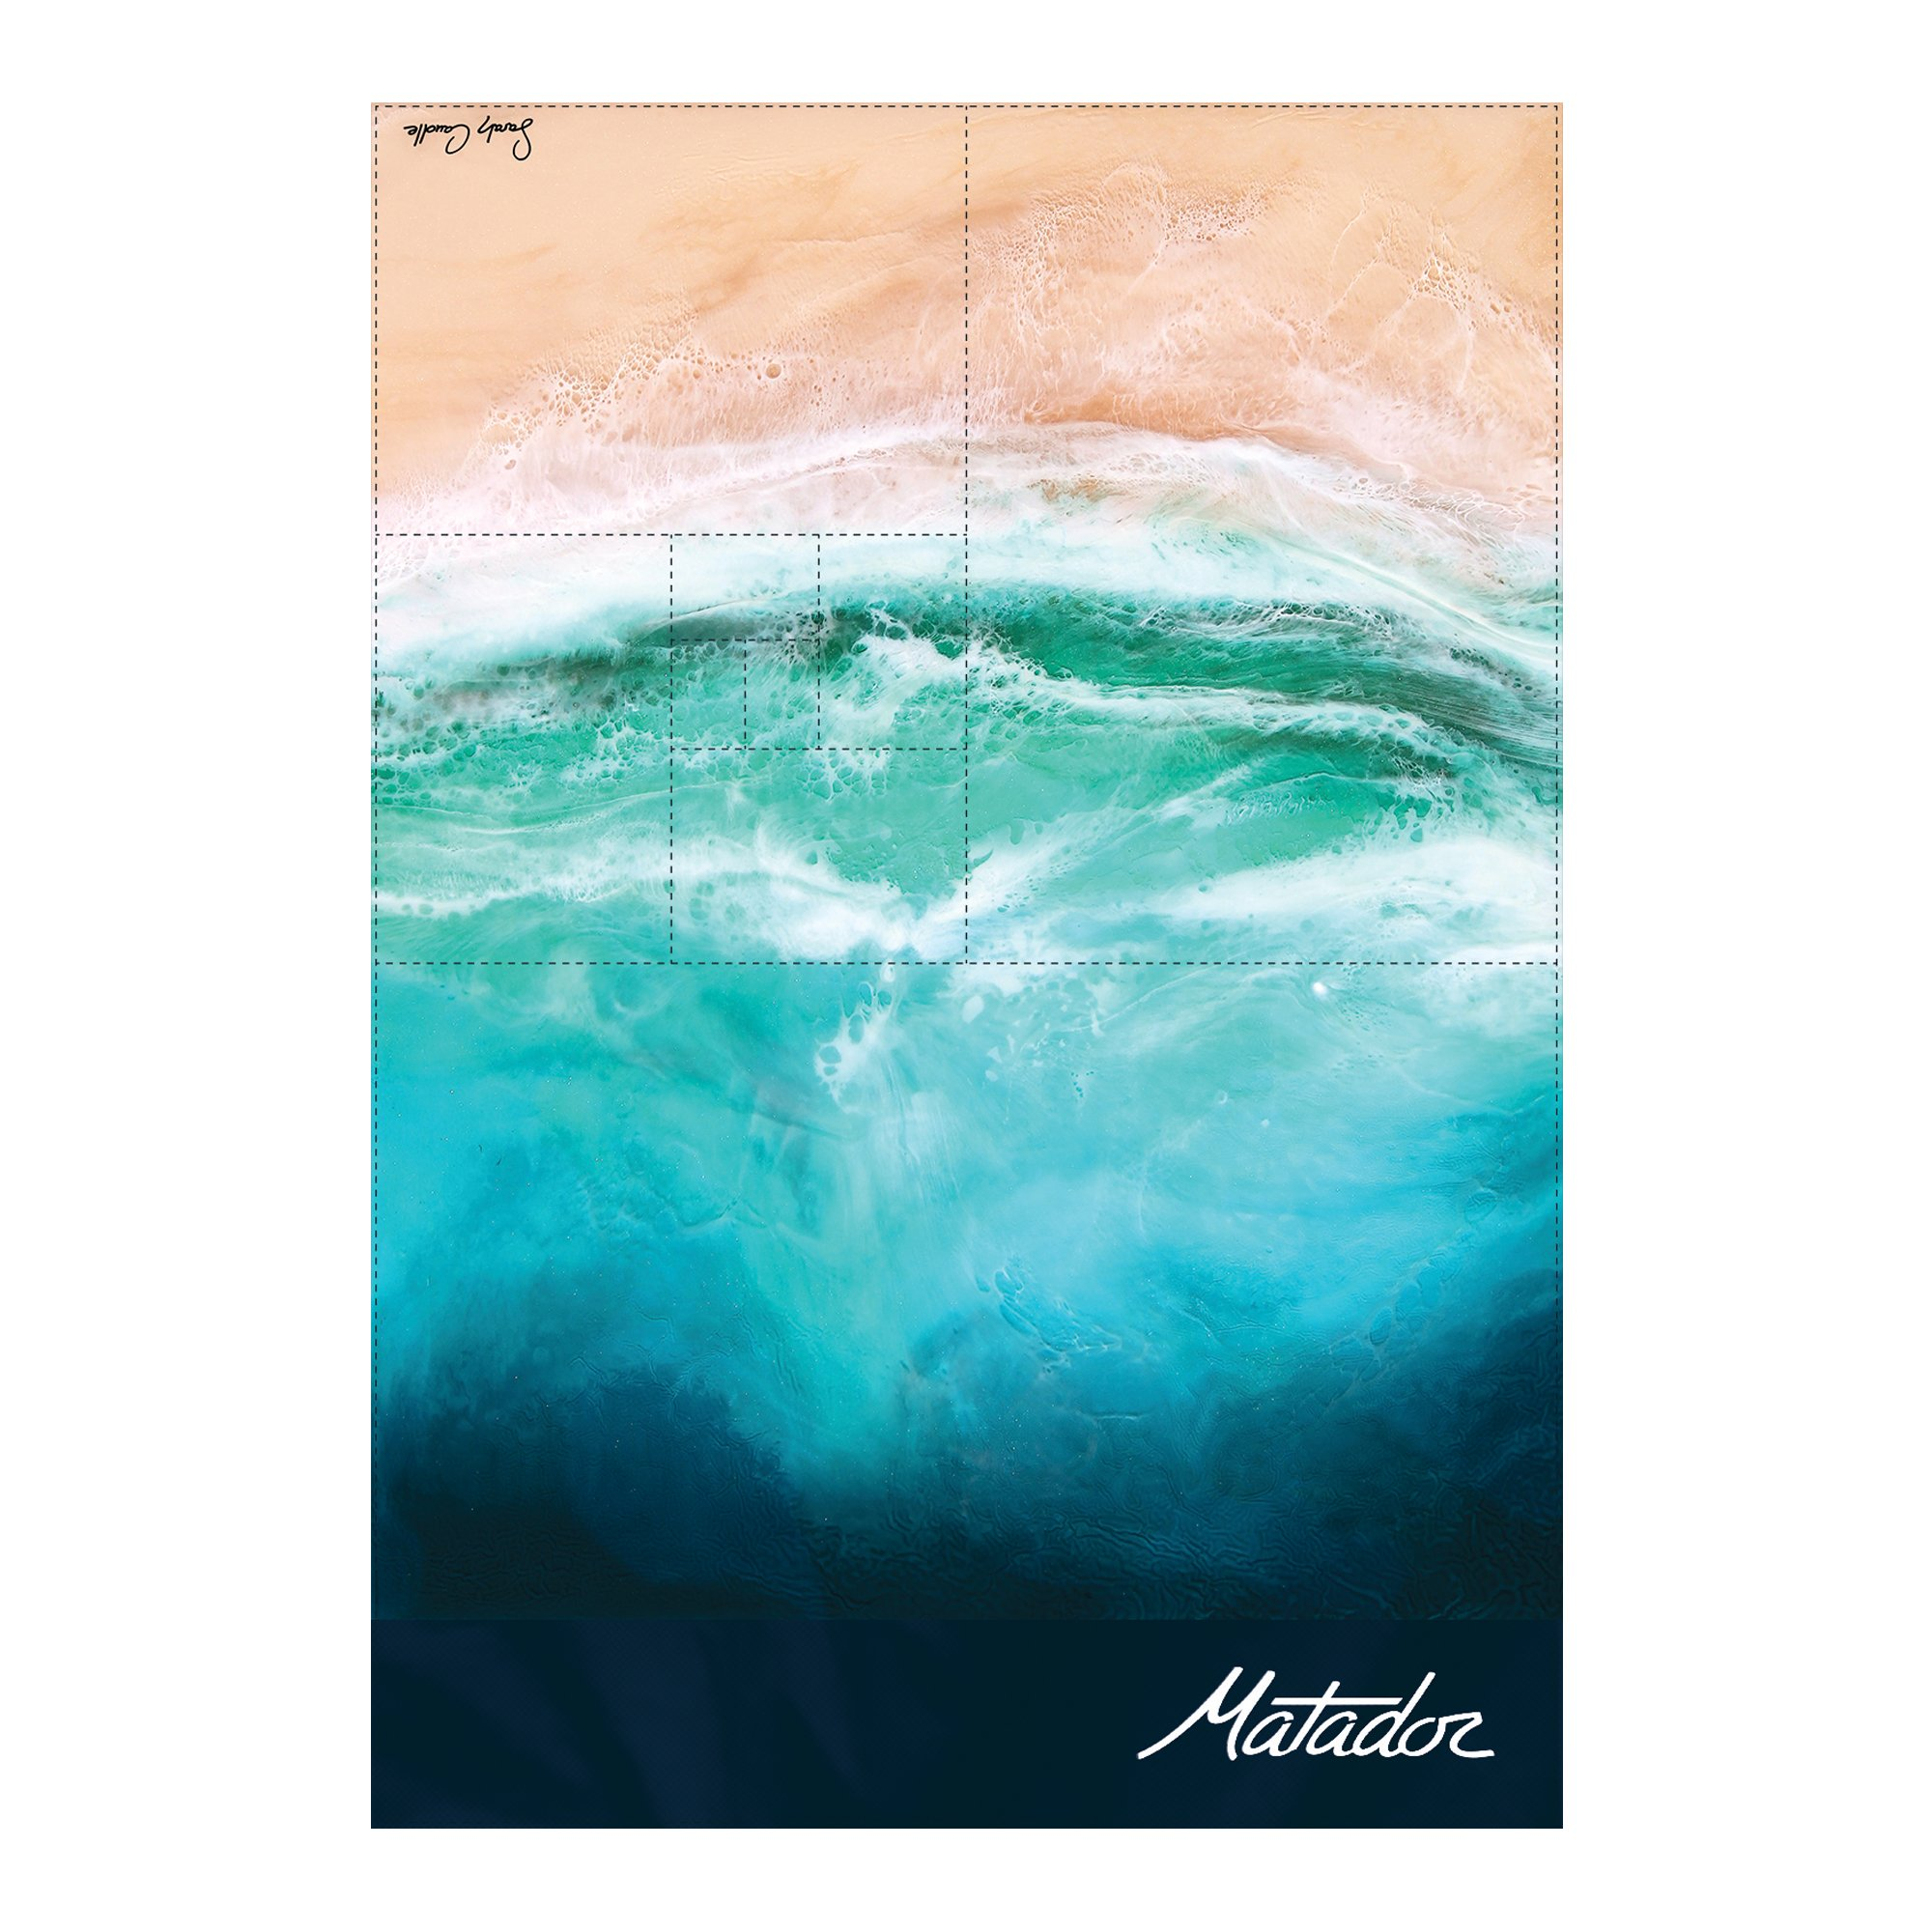 Matador Ocean Pocket Blanket